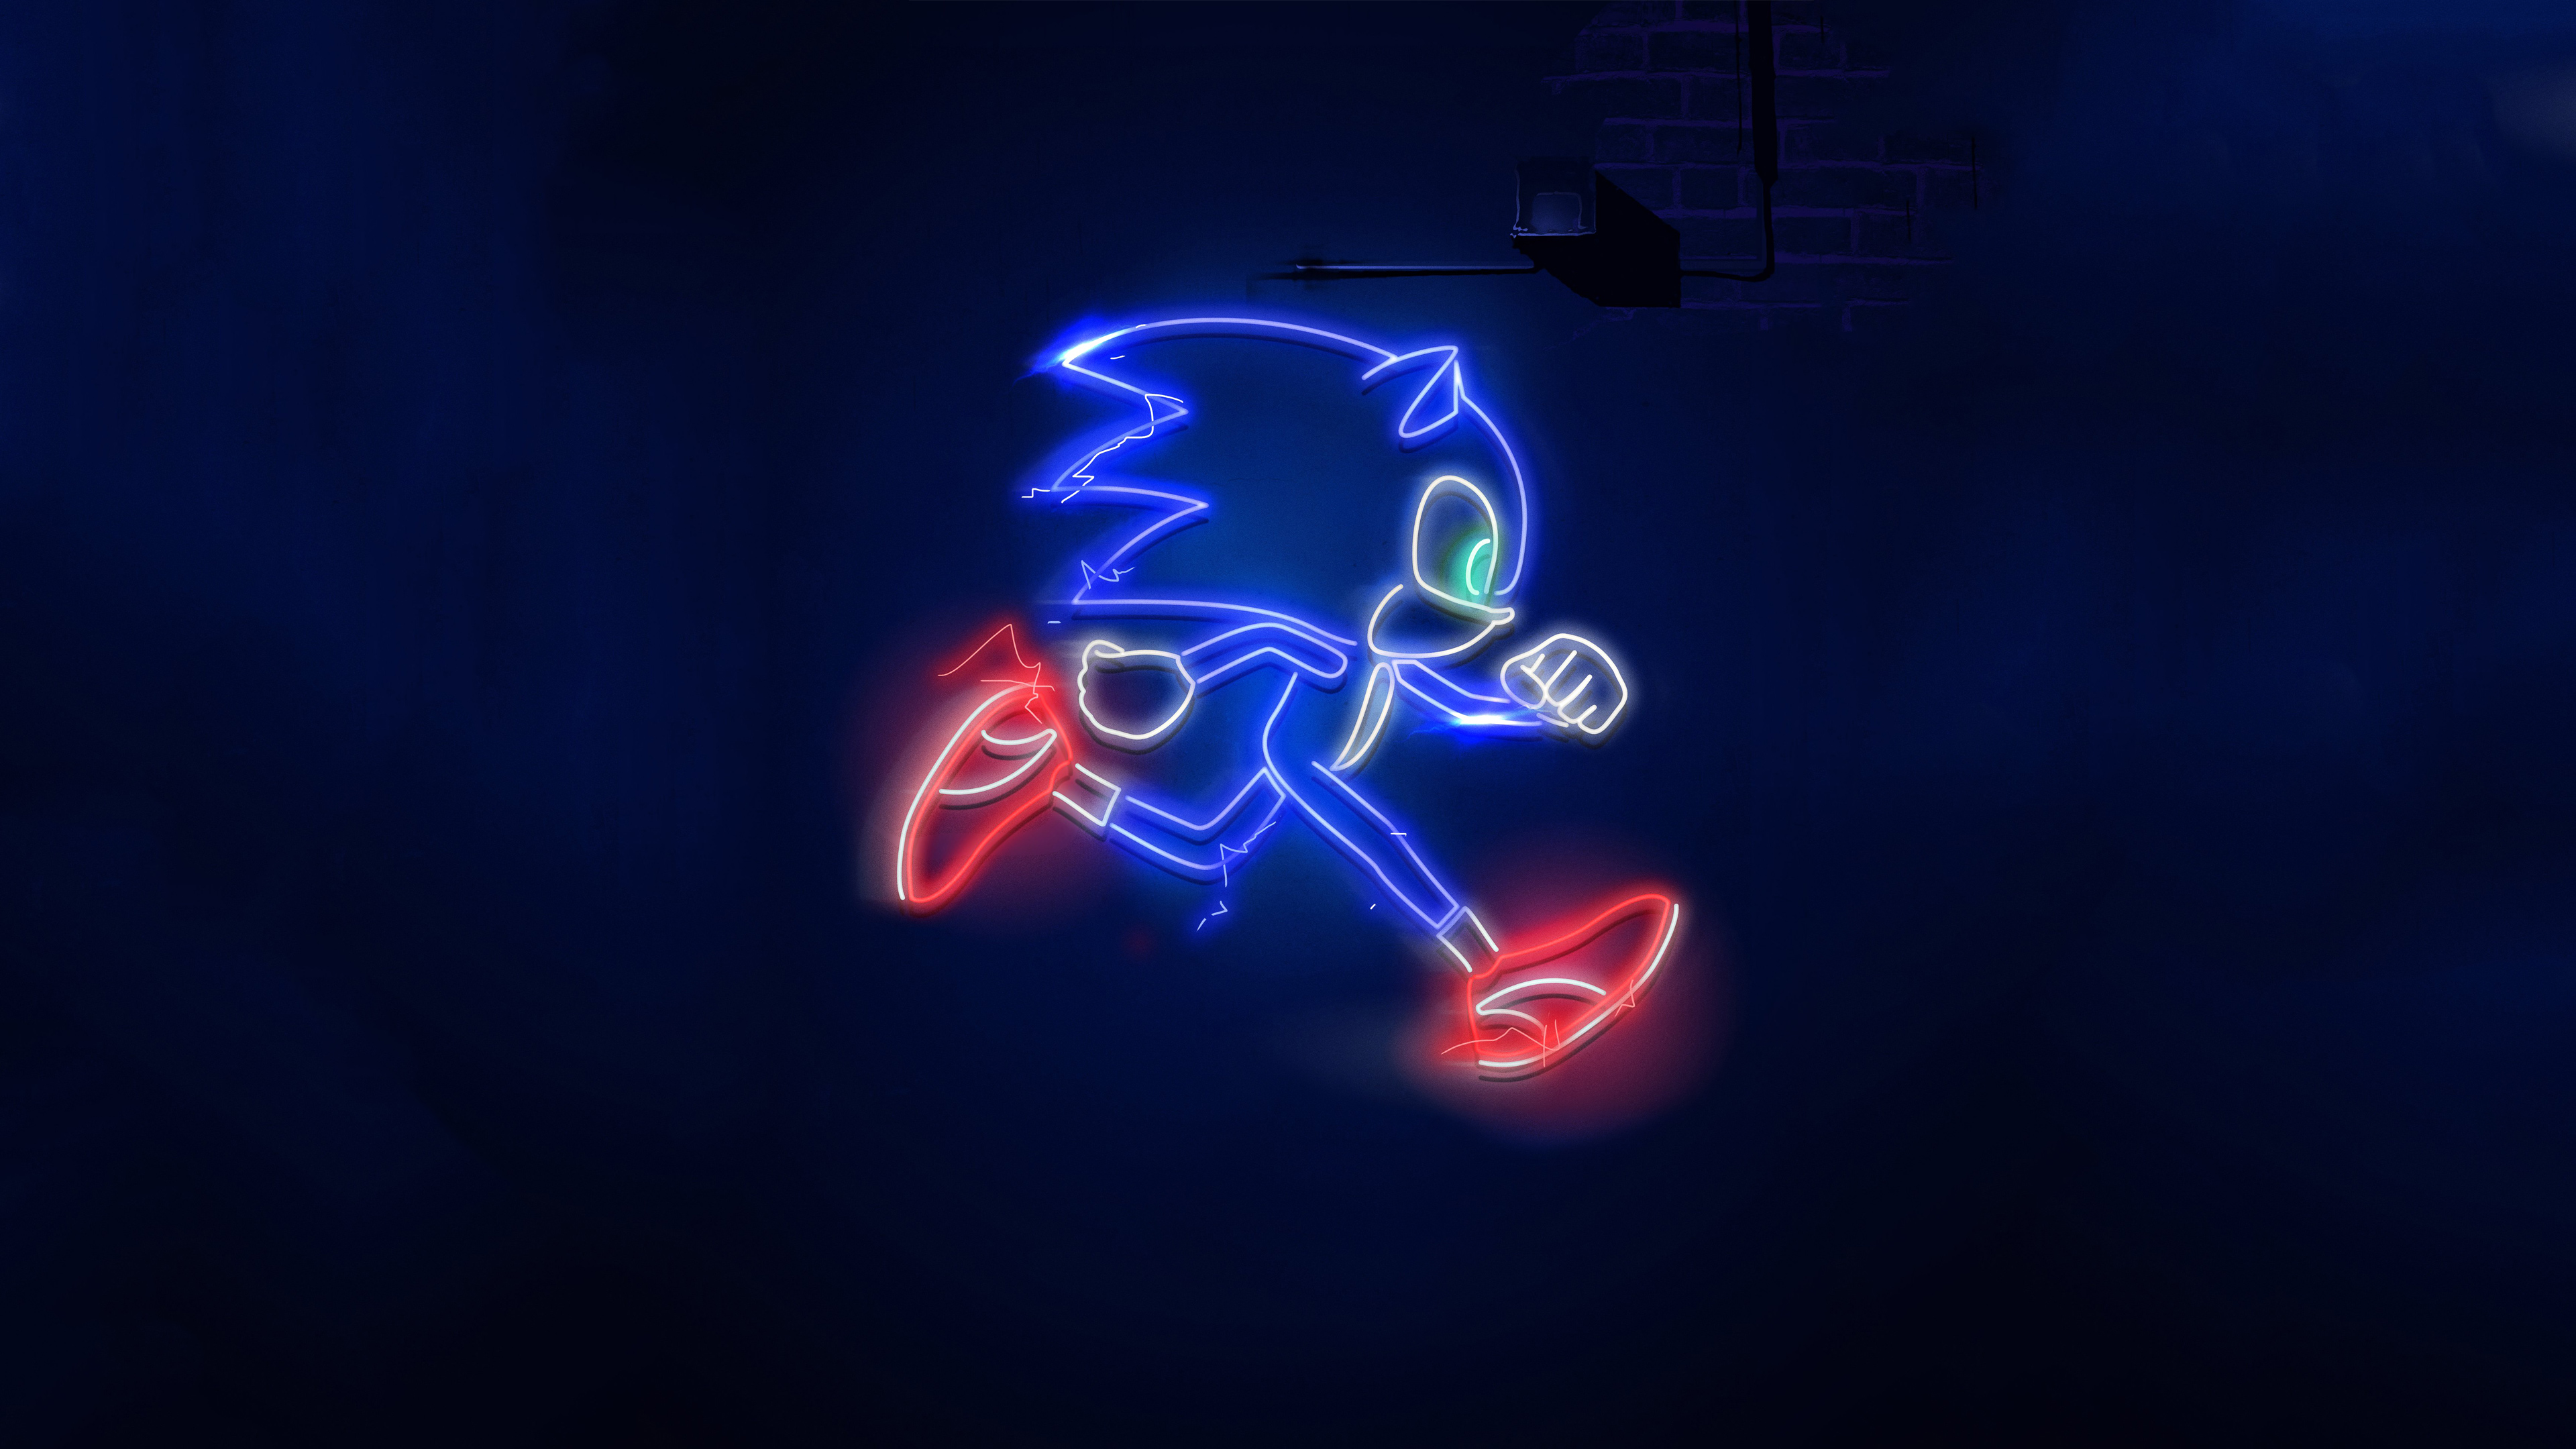 Sonic The Hedgehog Neon Sign 4k Ultra Hd Wallpaper Background Image 3840x2160 Id 1059959 Wallpaper Abyss